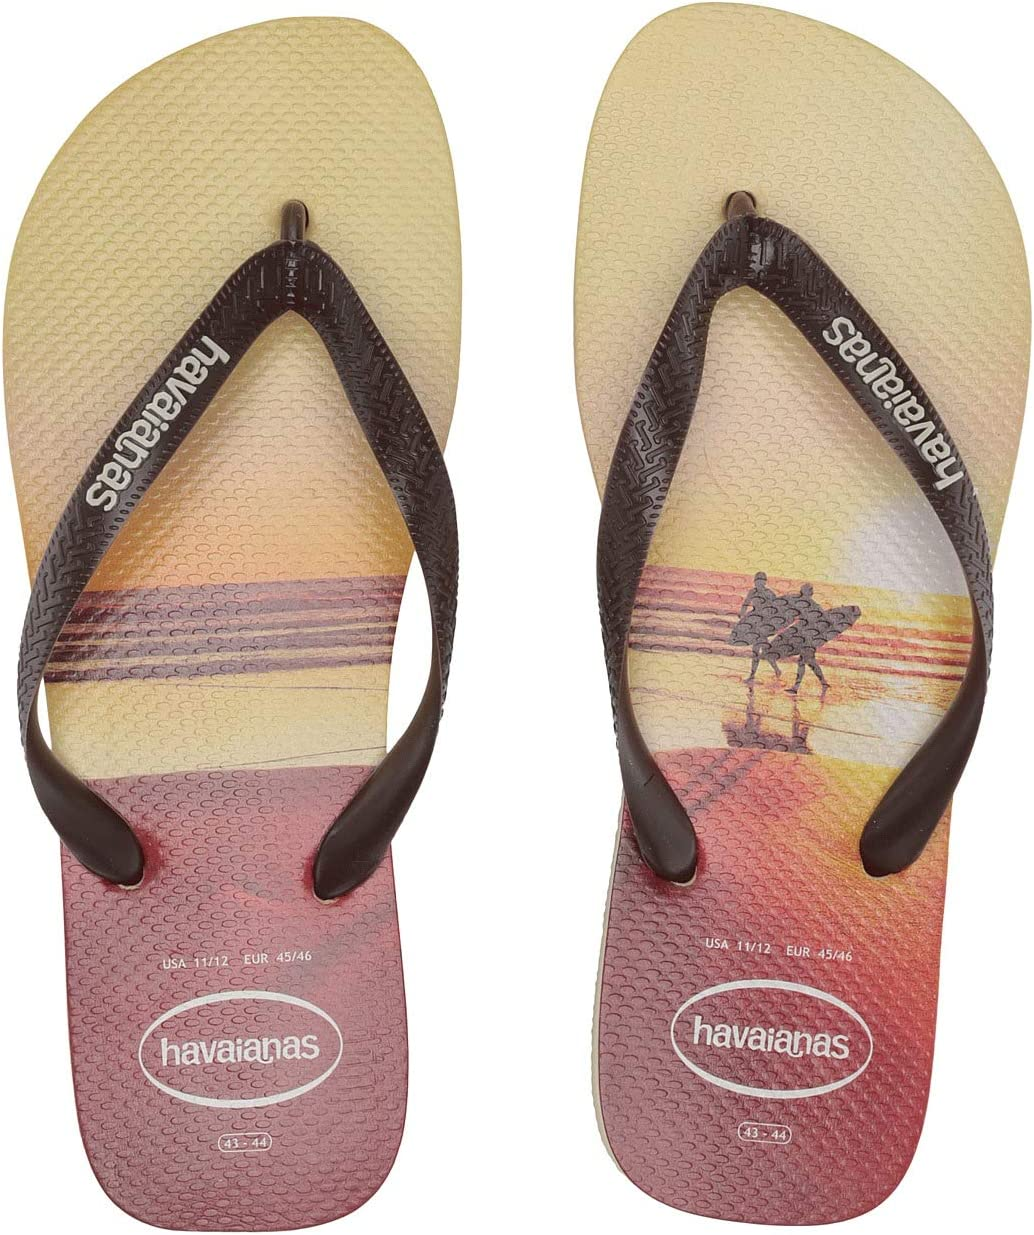 1cd211595d1014 Havaianas Shoes   Accessories